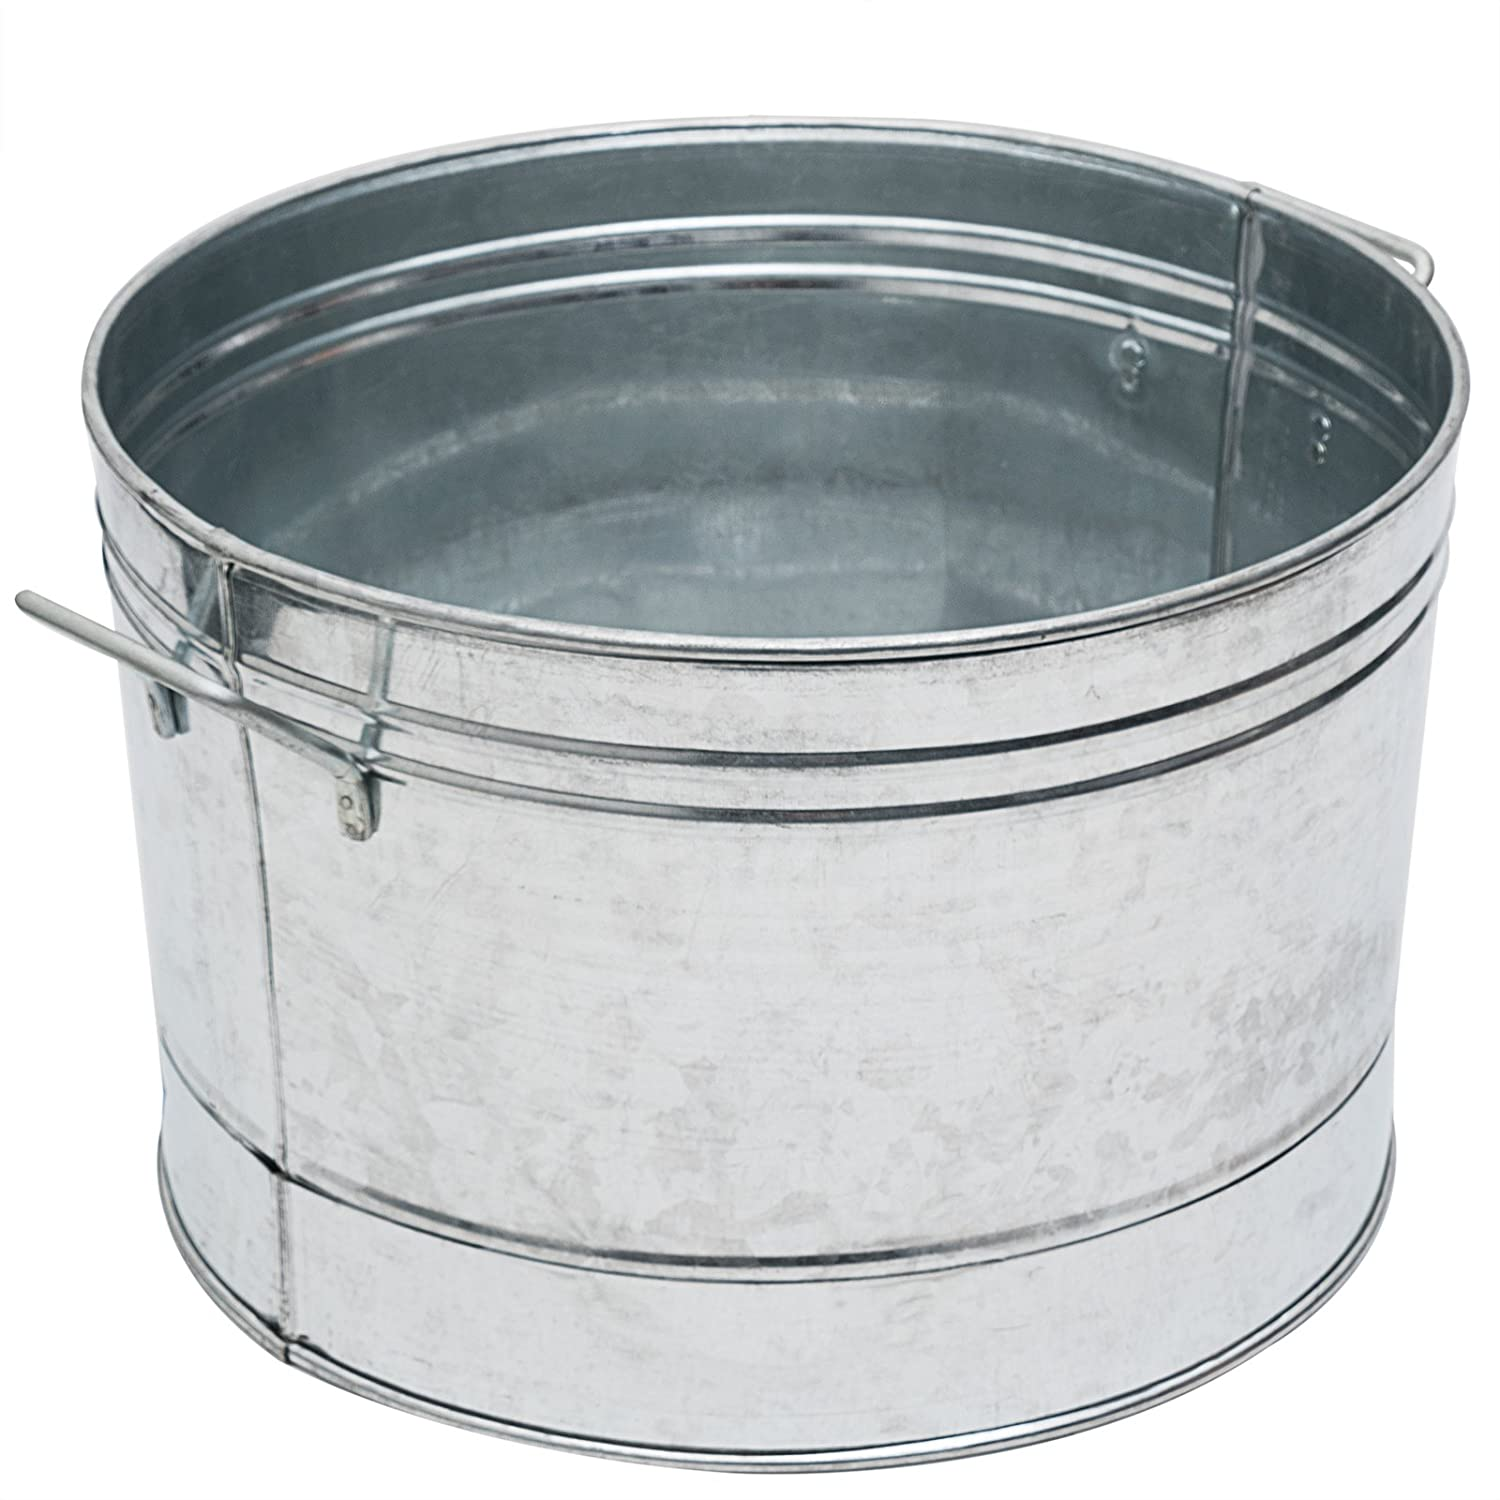 Achla Designs C-50 Round Galvanized Steel Tub